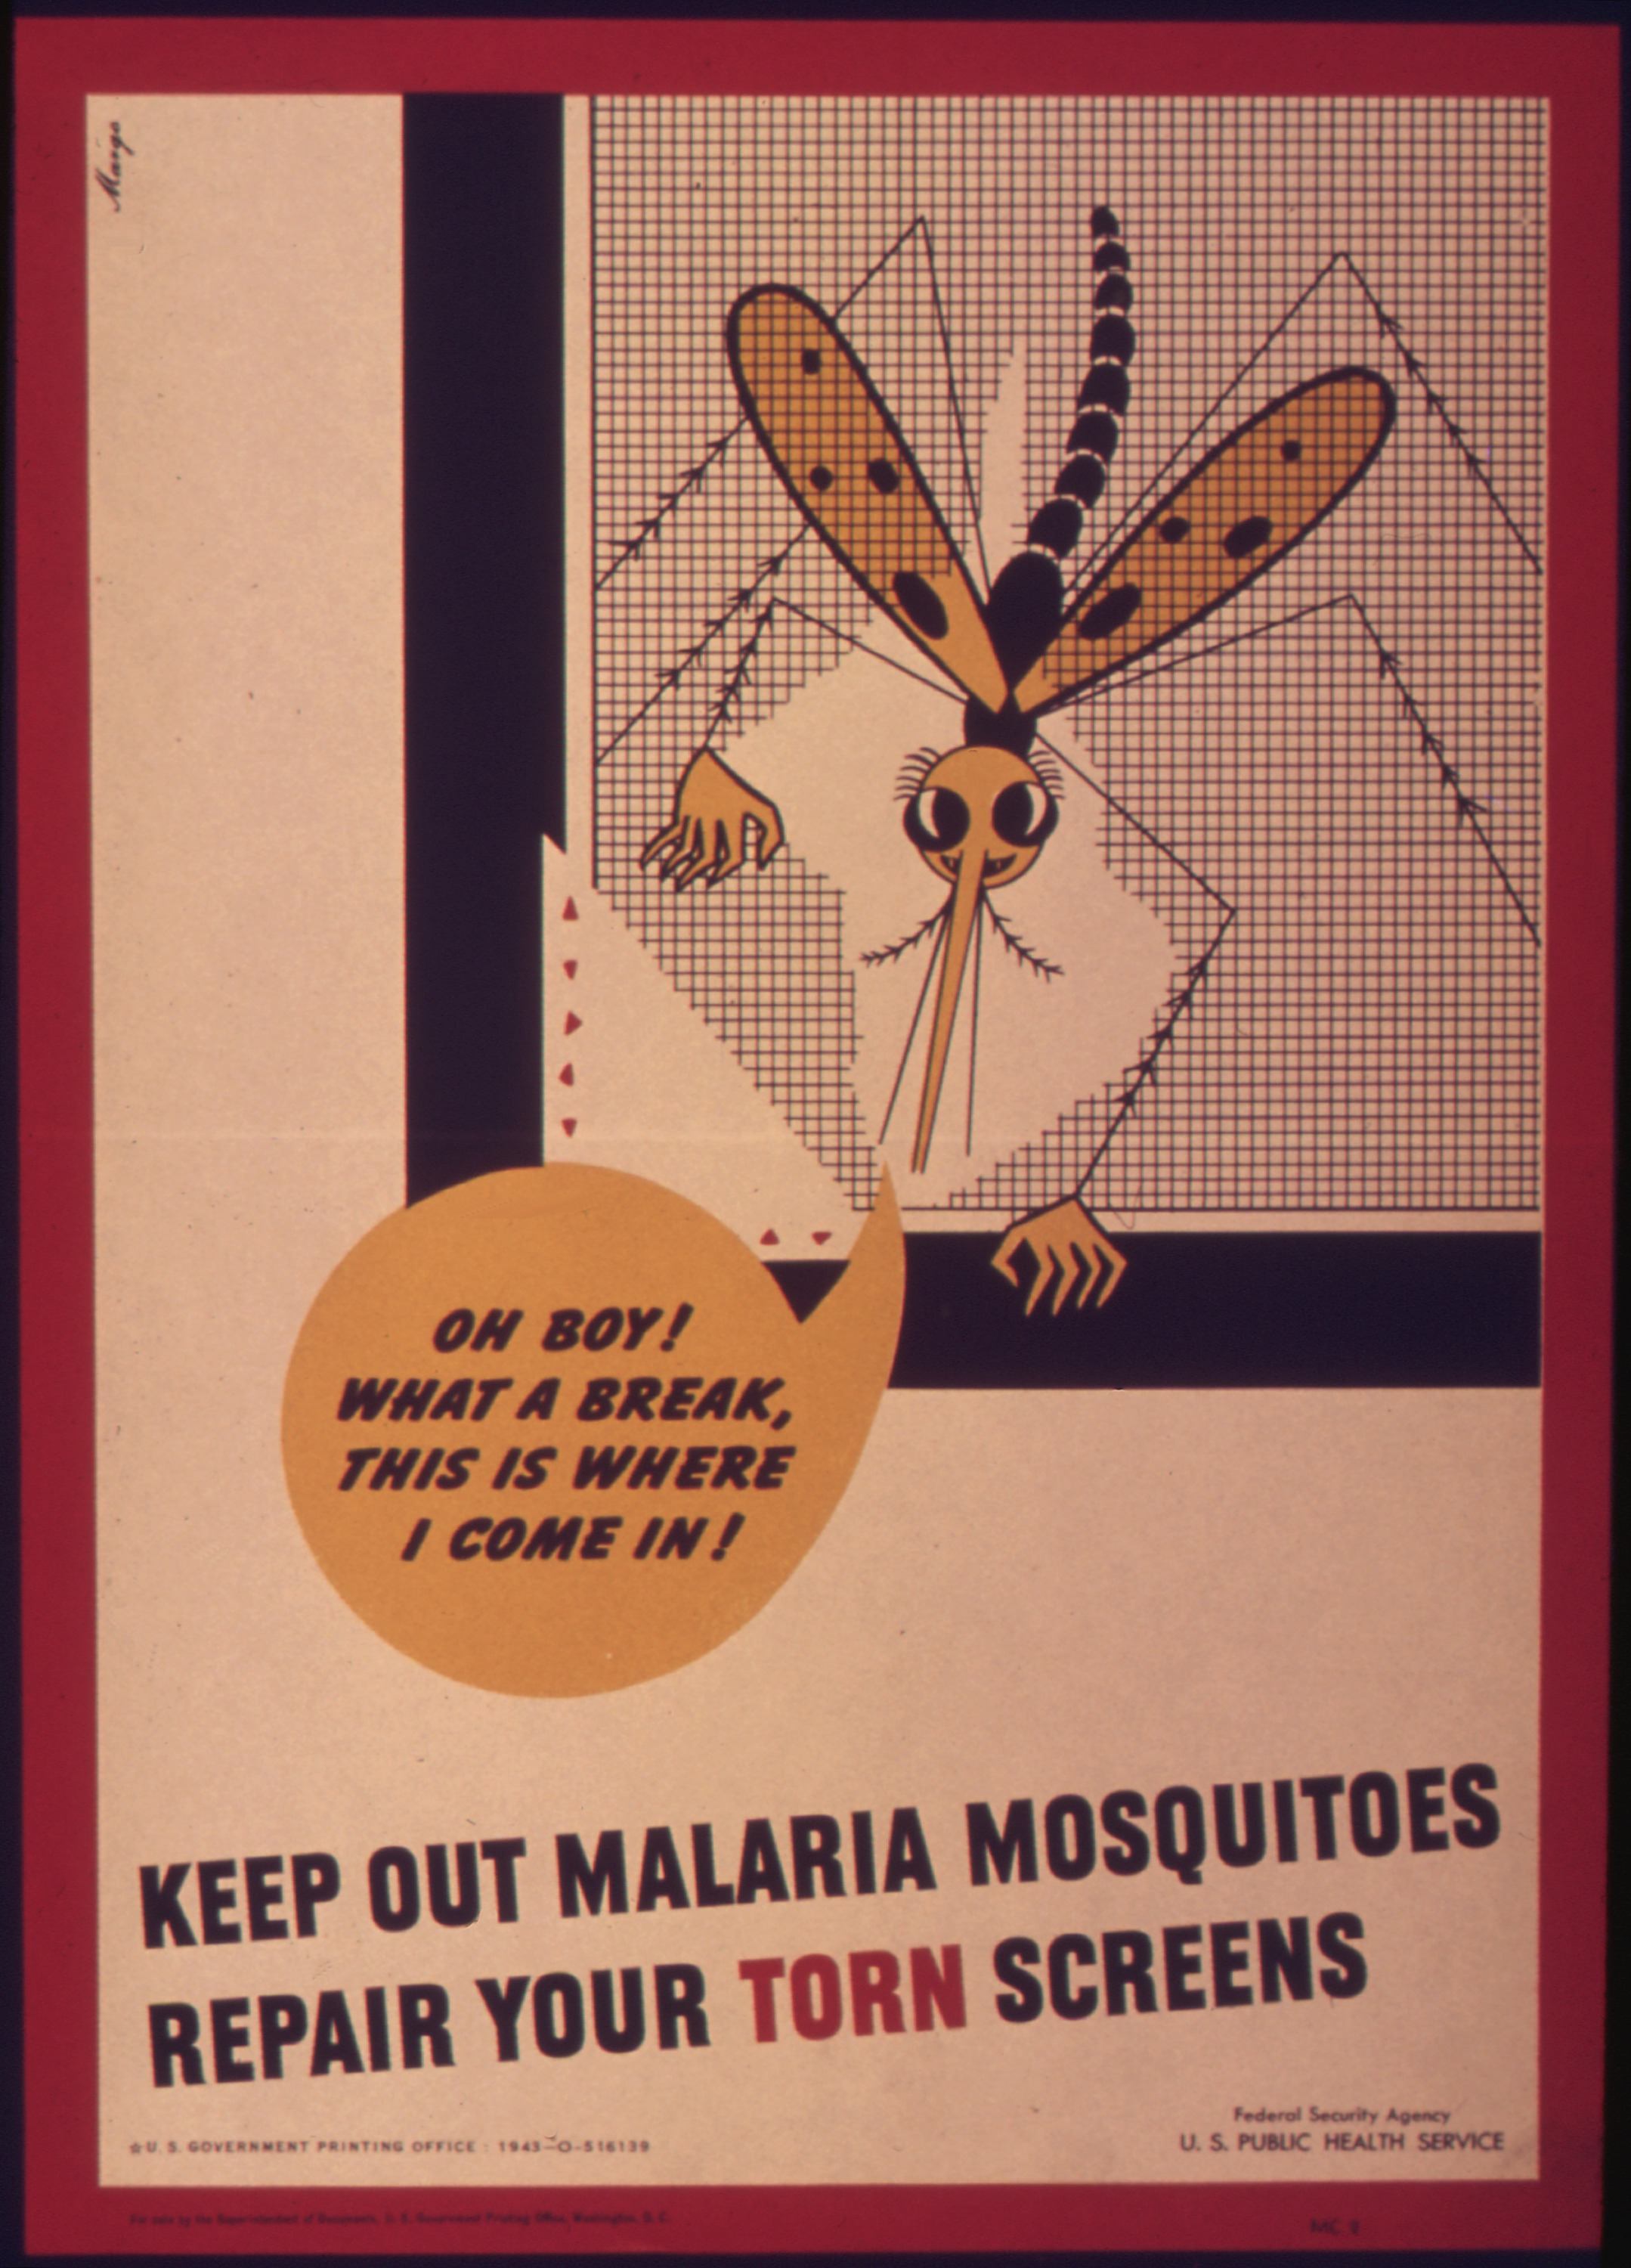 history of malaria - wikipedia